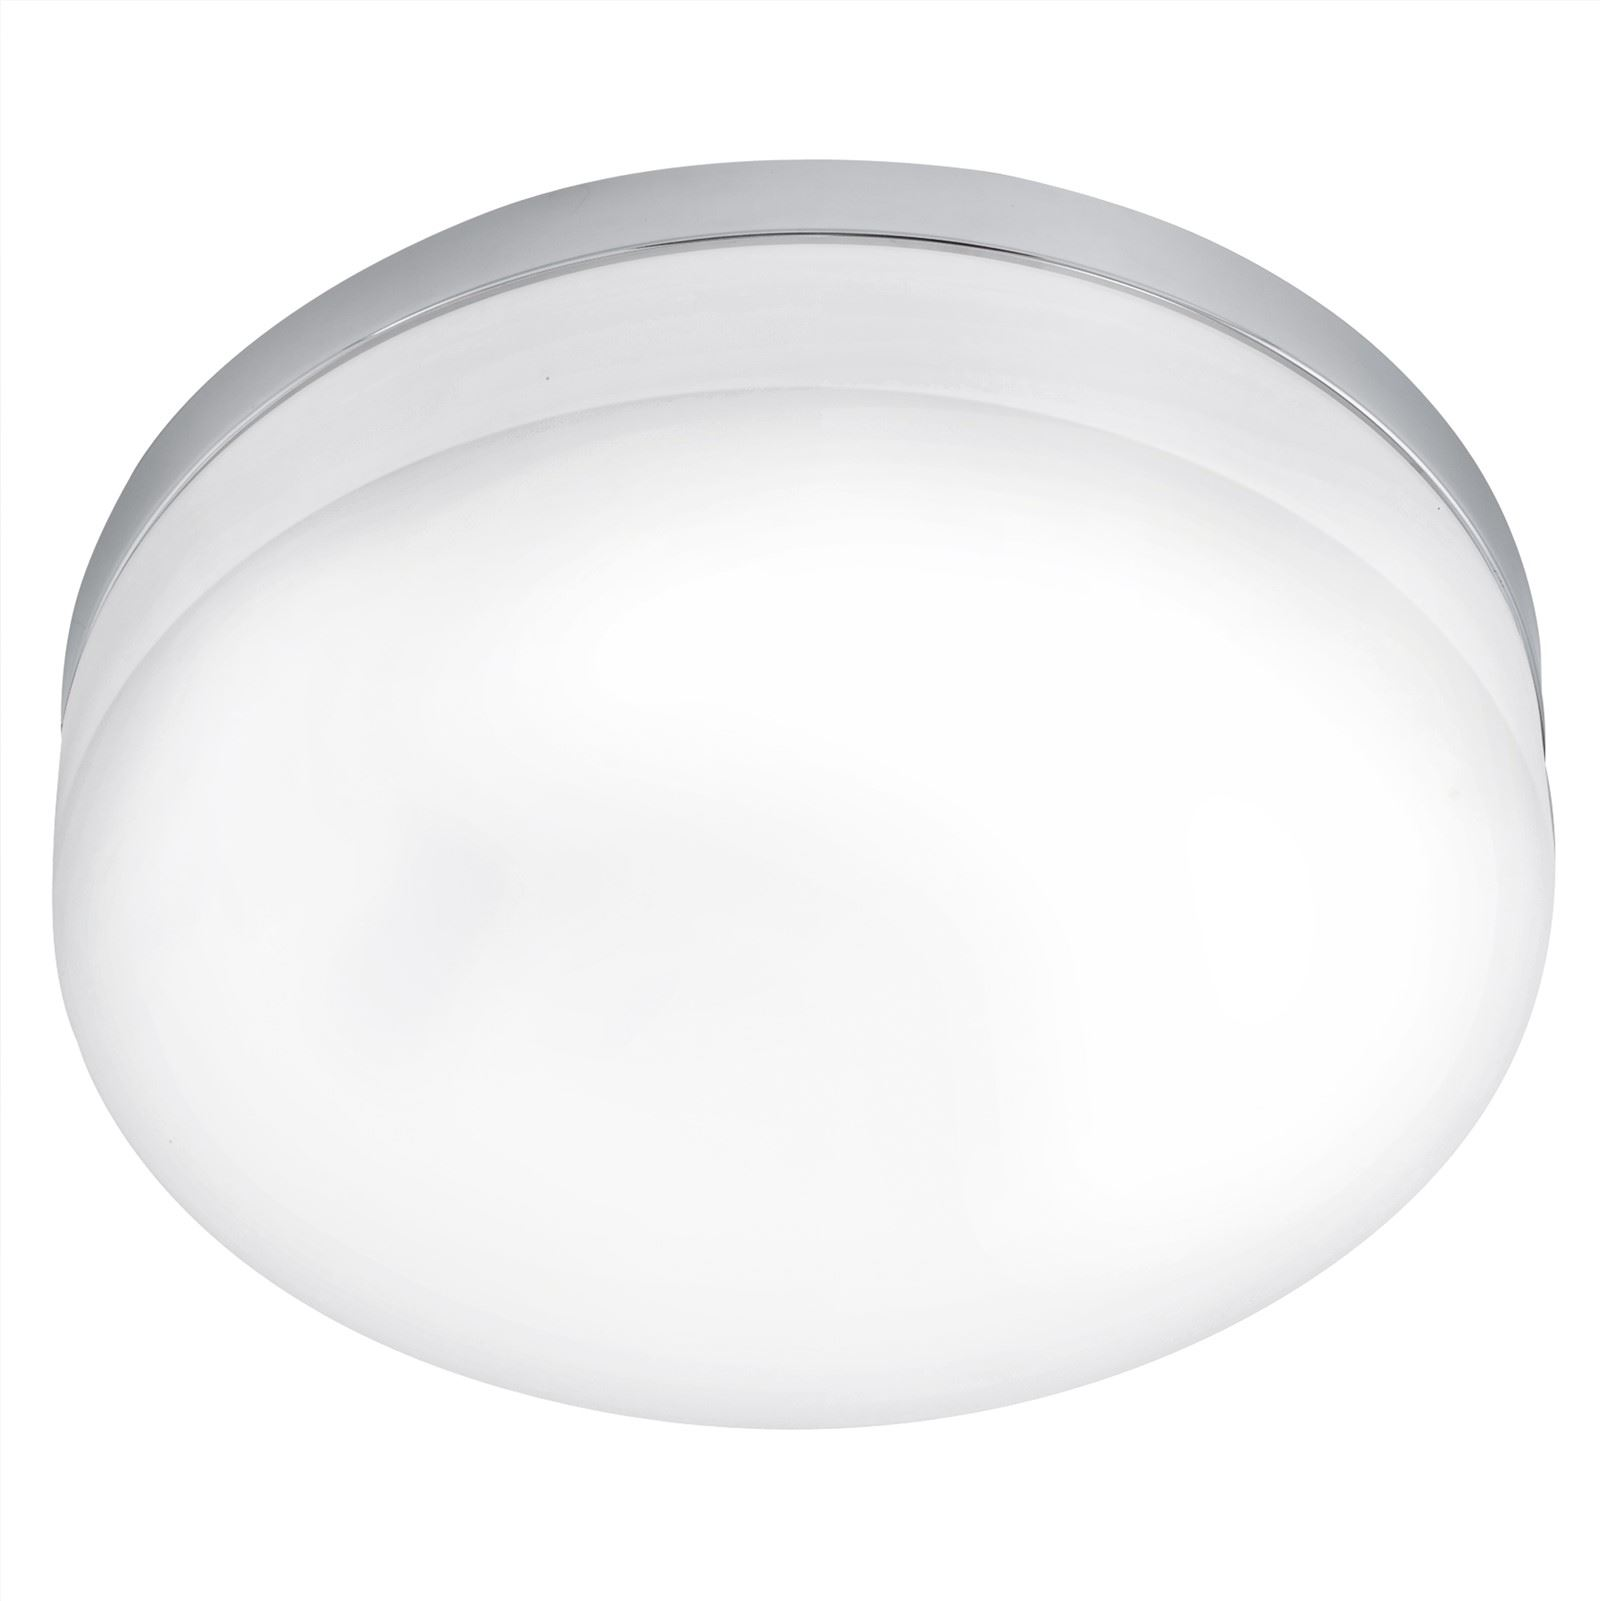 Lora LED Ceiling Light Diameter 420 mm Steel Chrome Opal Glass White Shade